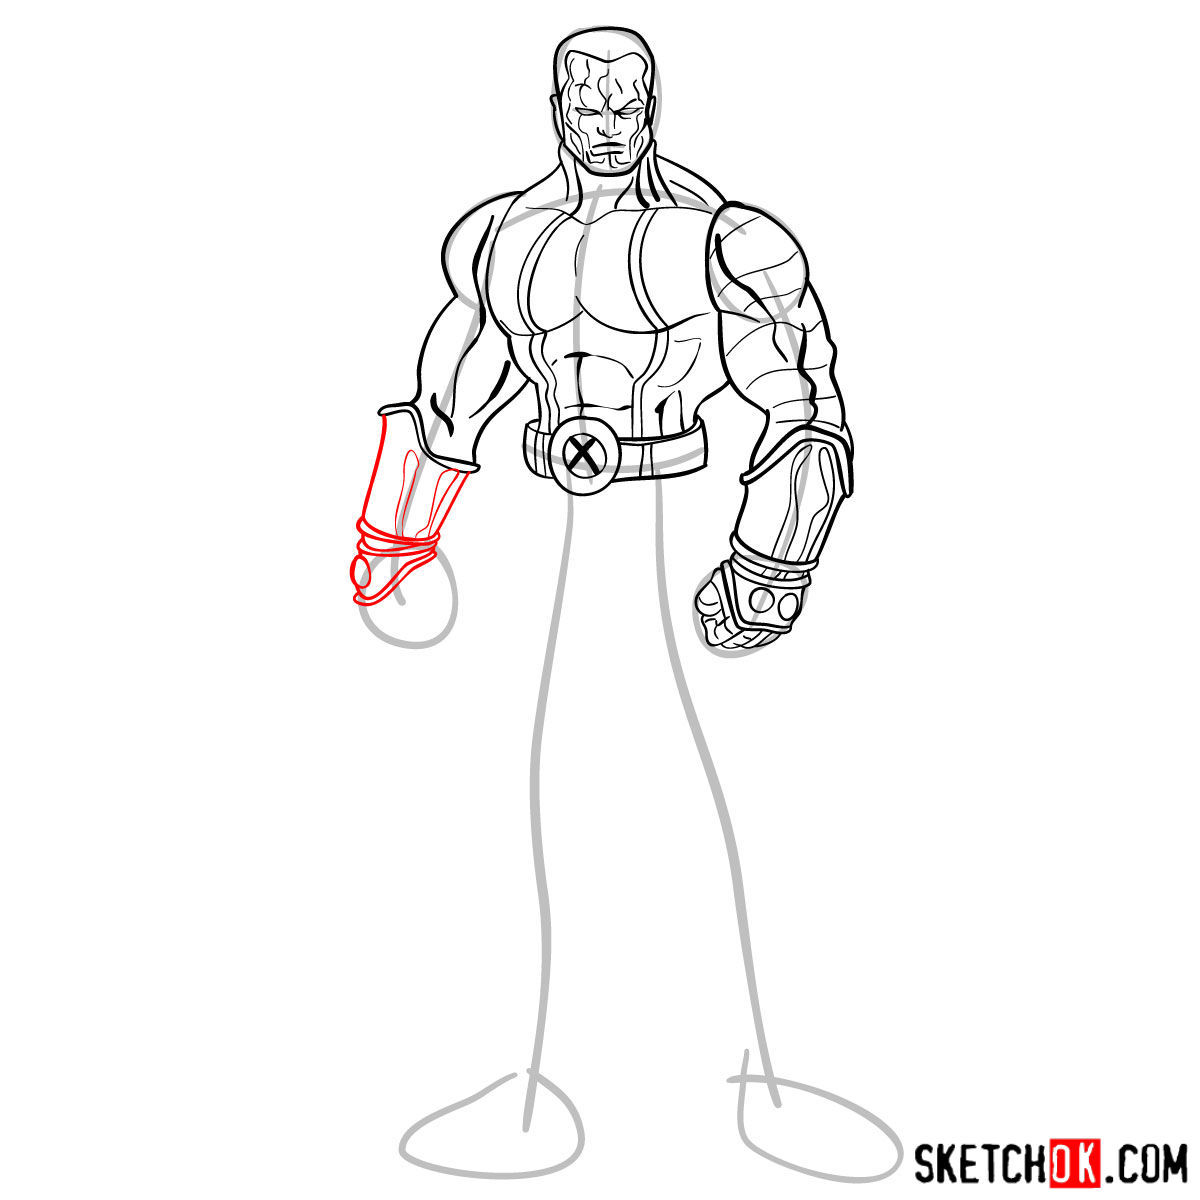 How to draw Colossus from Deadpool film and X-Men series - step 10